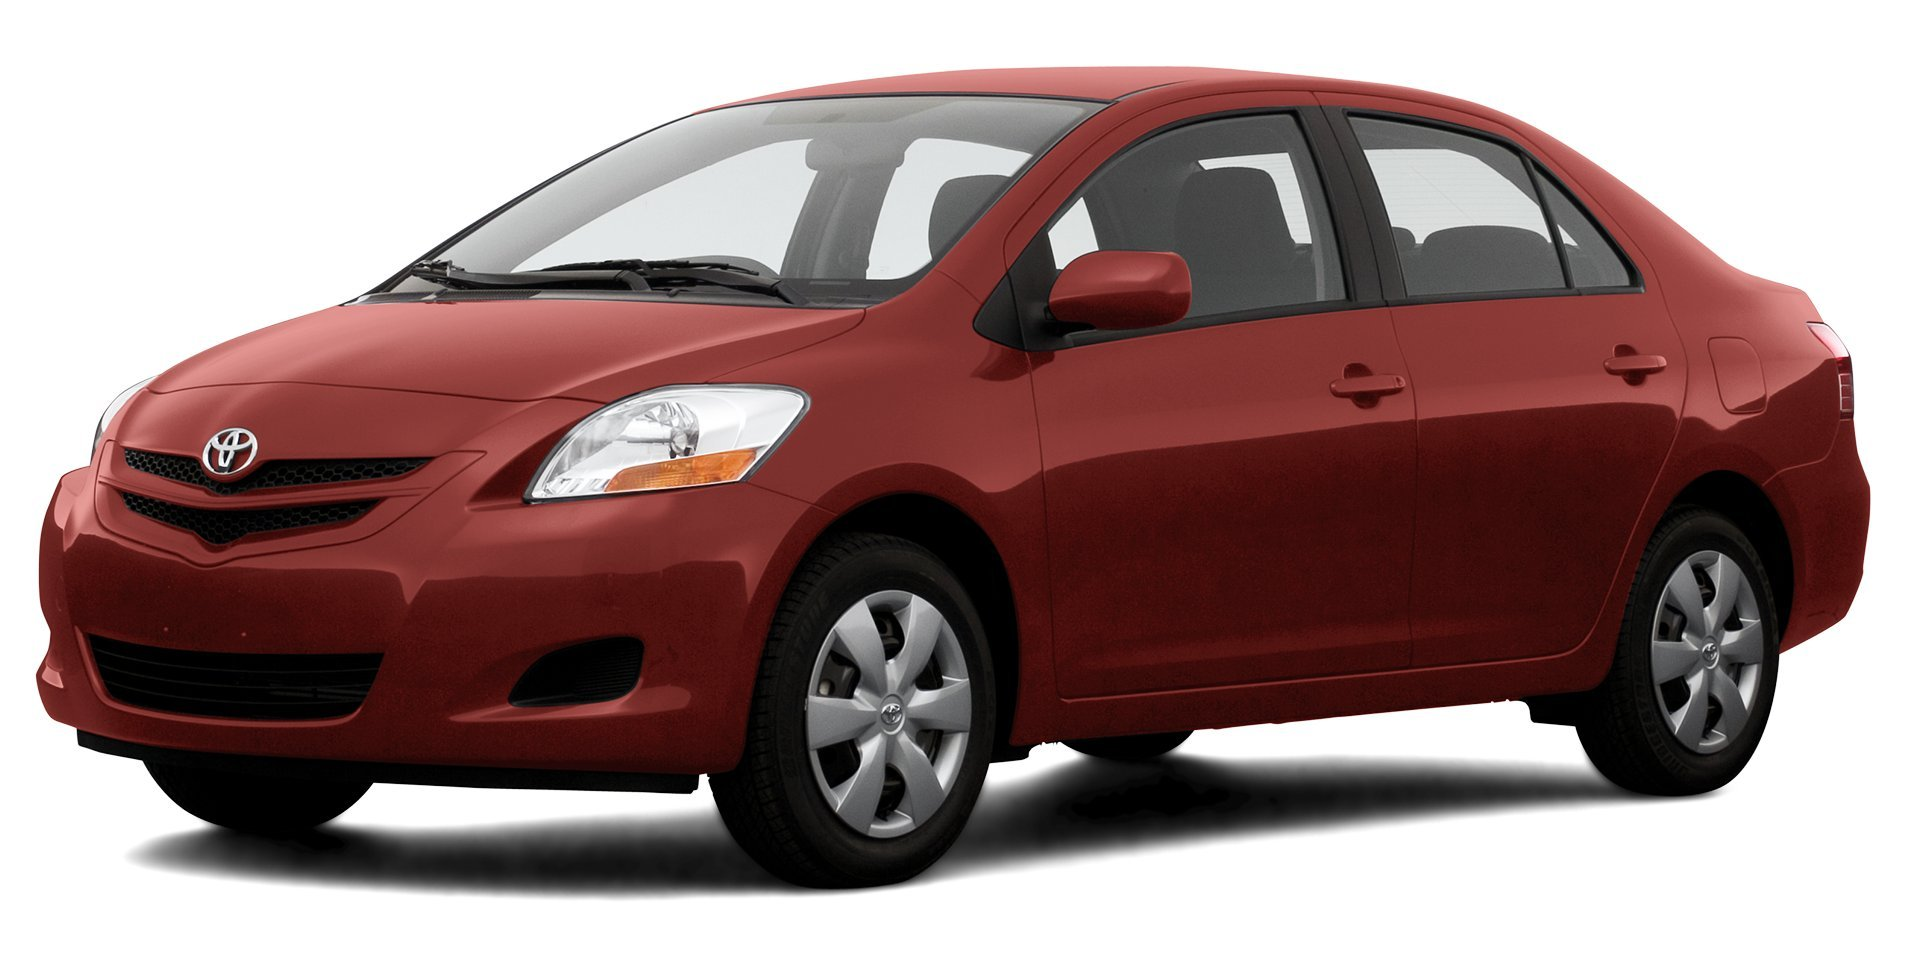 2007 kia rio reviews images and specs vehicles. Black Bedroom Furniture Sets. Home Design Ideas